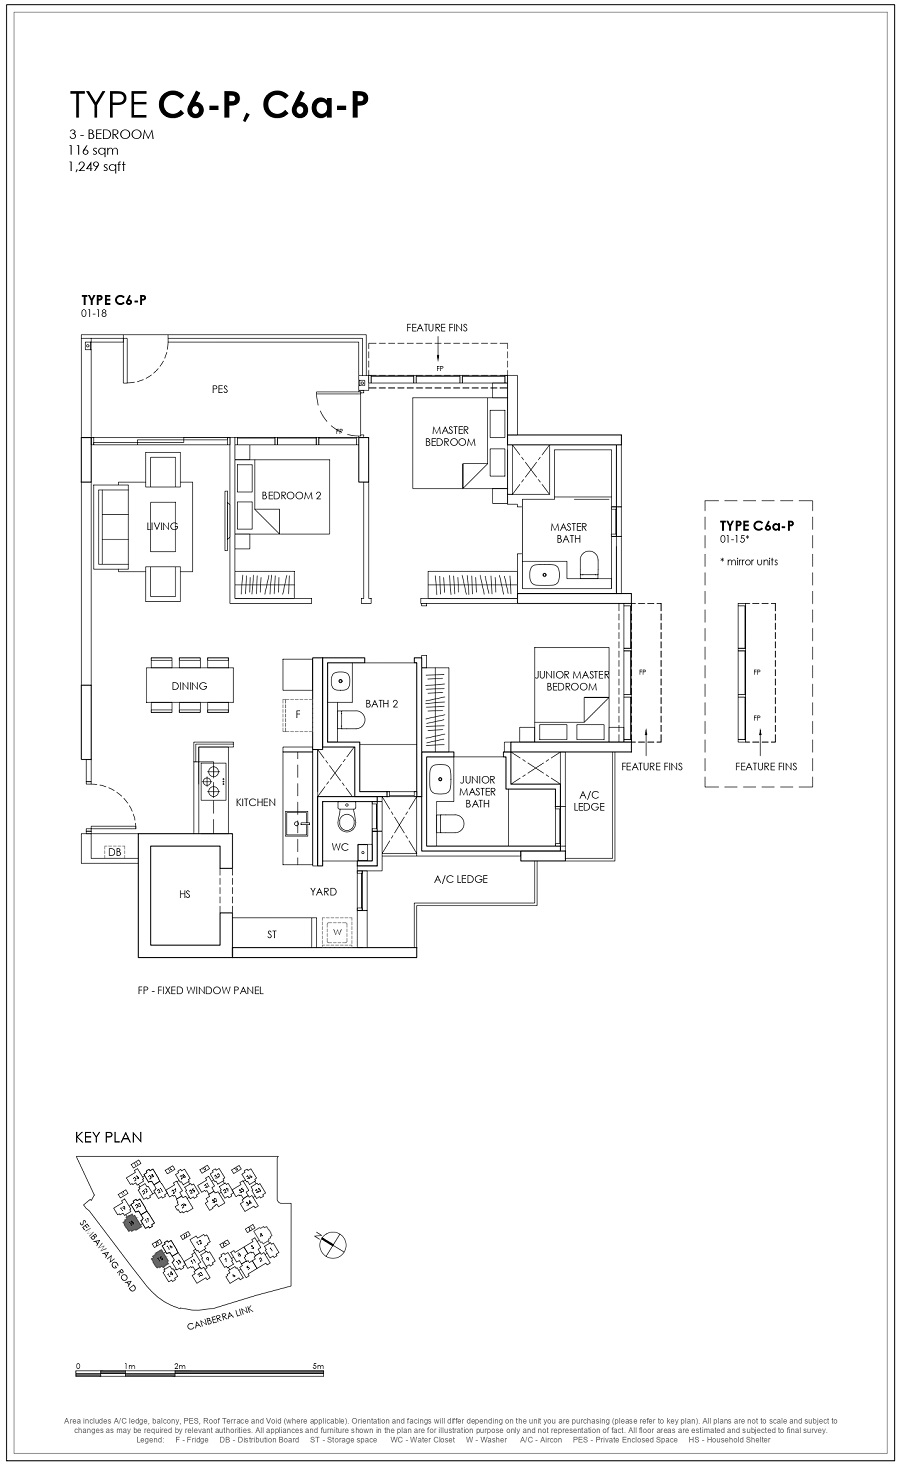 Provence Residence EC 3BR Type C6-P_C6a-P 116_1249